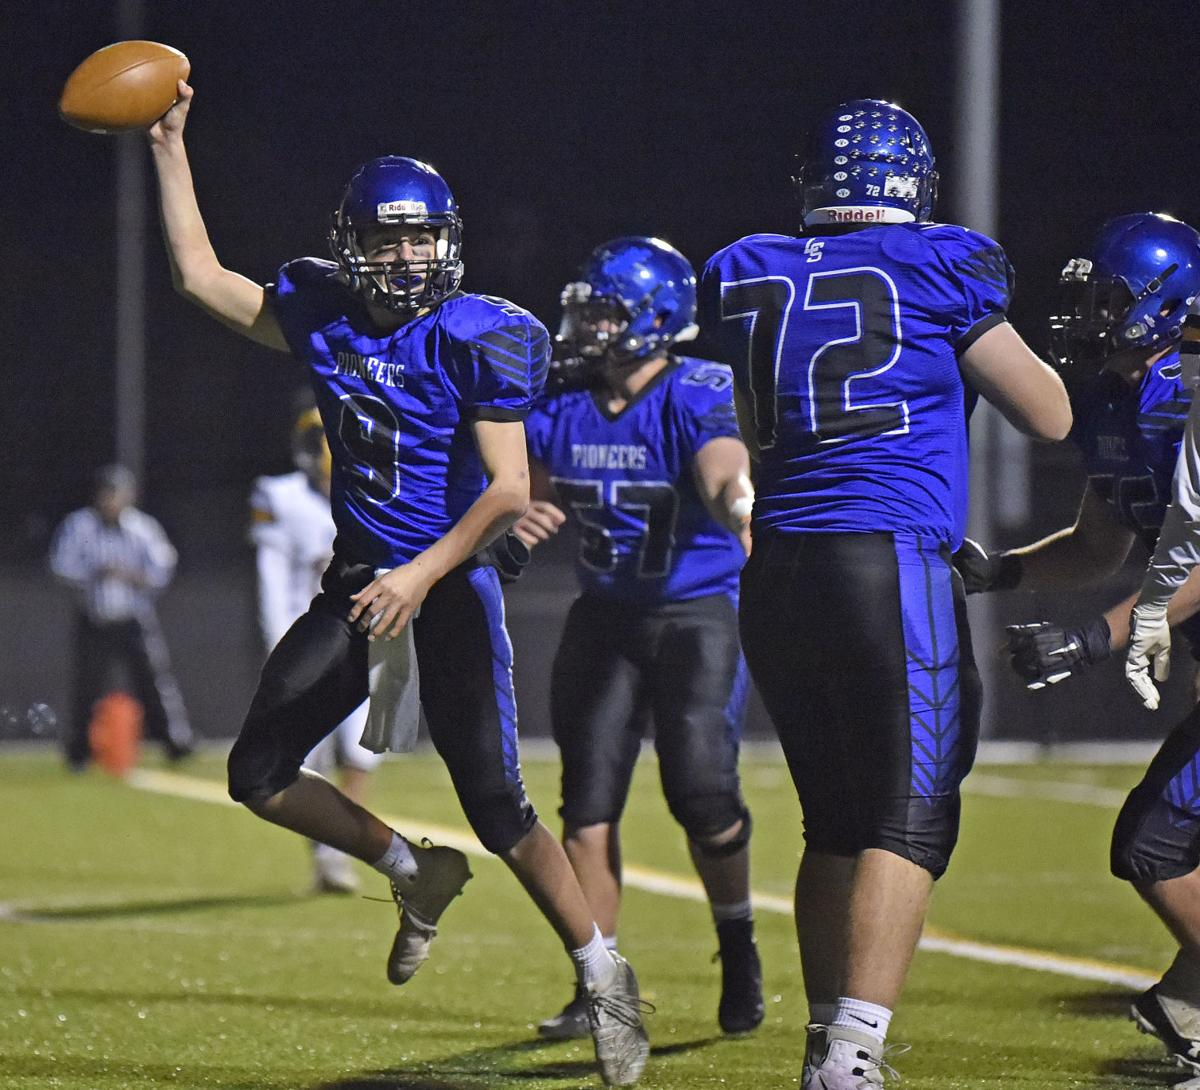 Lampeter-Strasburg vs Elco-District 3 4A Playoff